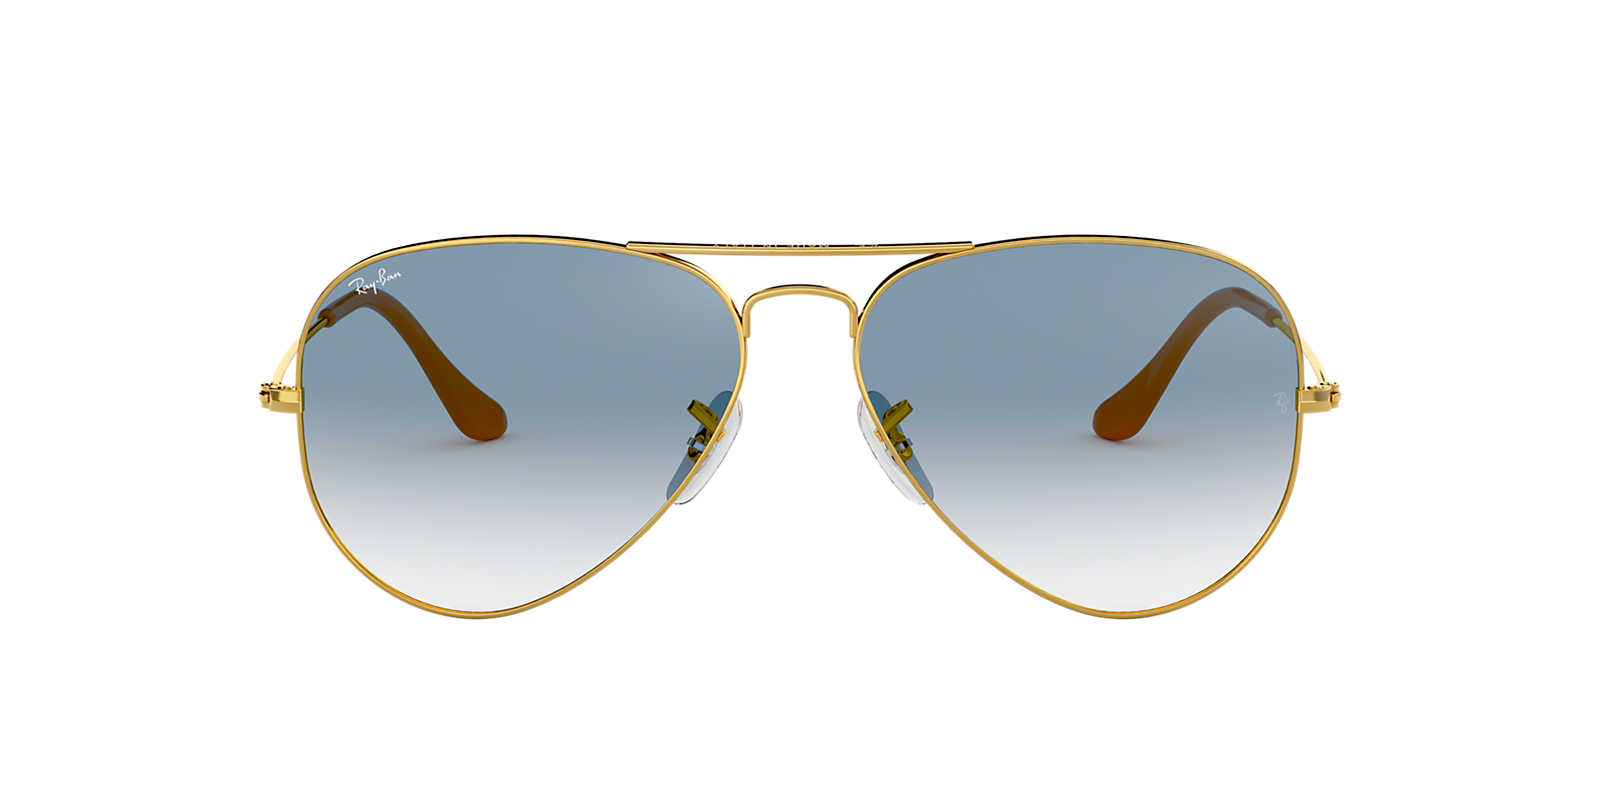 ray ban pilot sunglasses ofa0  RAY-BAN Gold RB3025 55 ORIGINAL AVIATOR Blue lenses 55mm